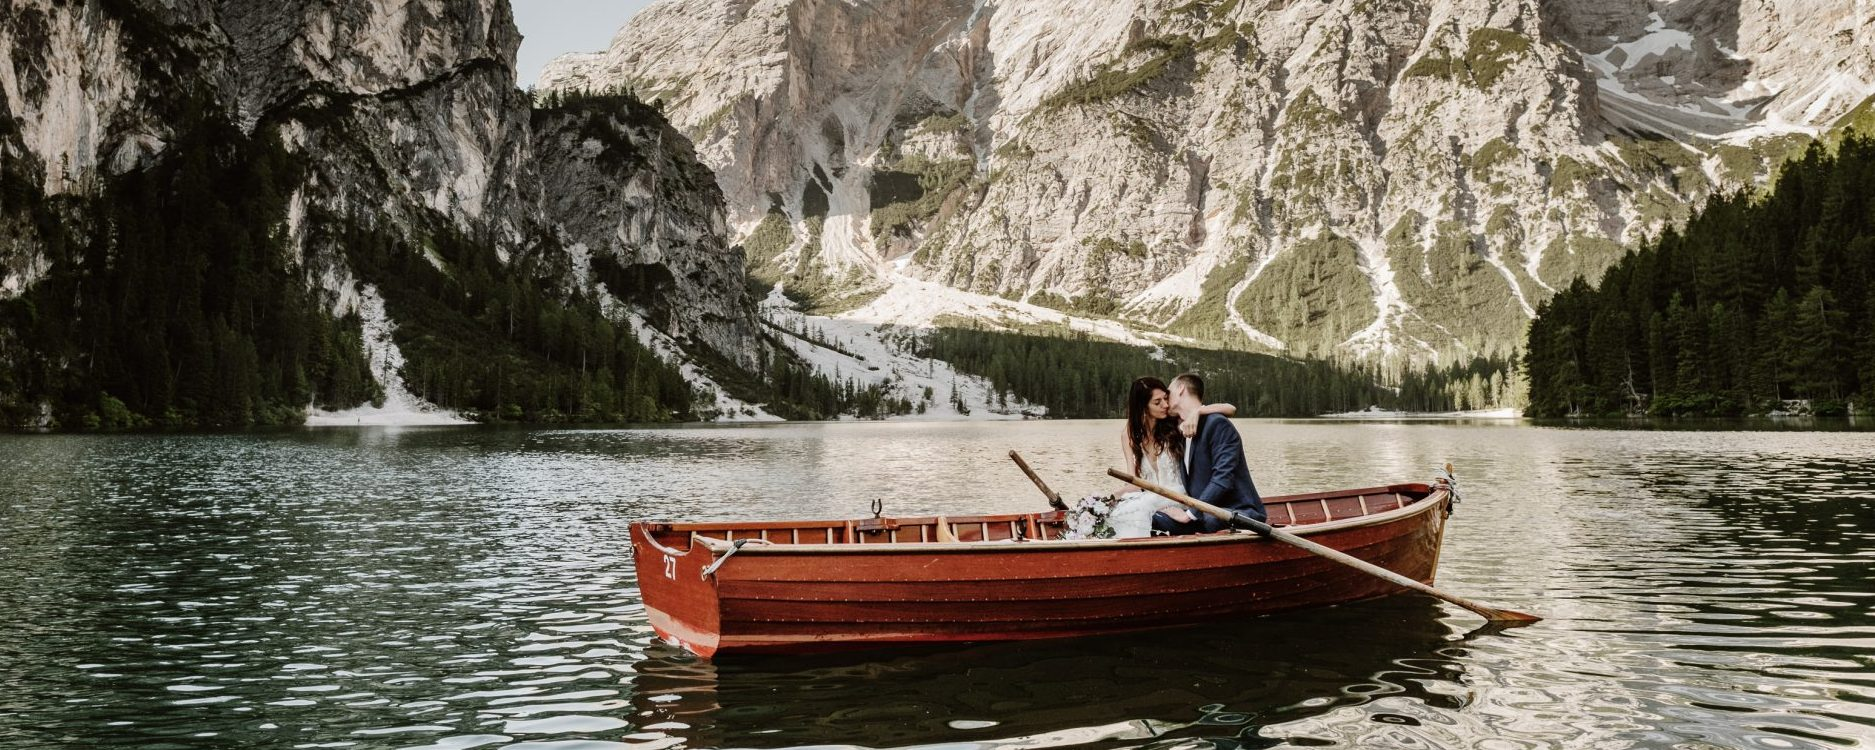 An elopement wedding at Lago di Braies in the Dolomites by Wild Connections Photography